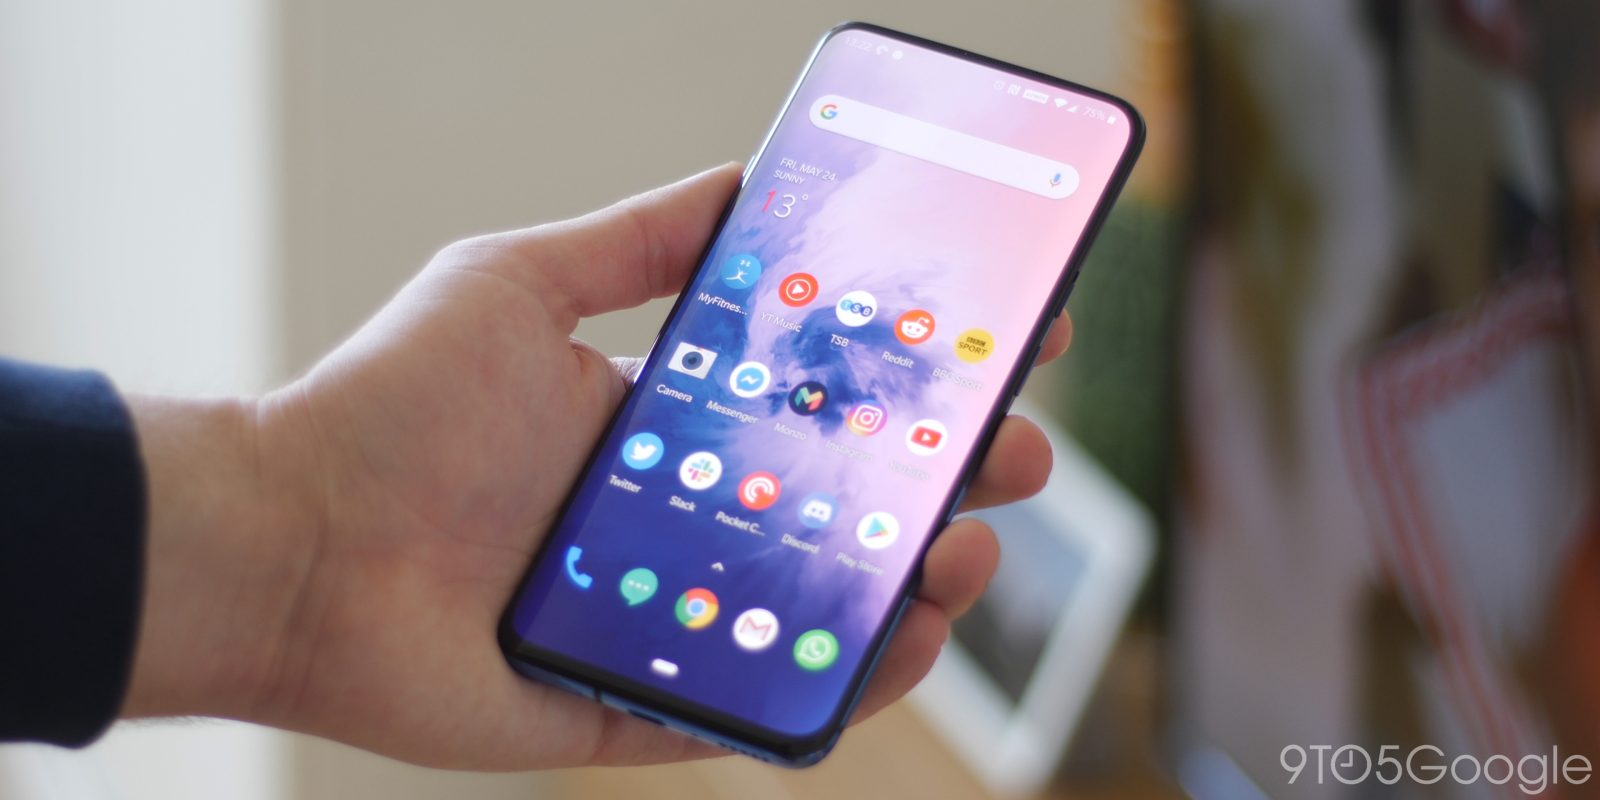 OnePlus 7 Pro 'ghost touch' issue gets a temporary solution